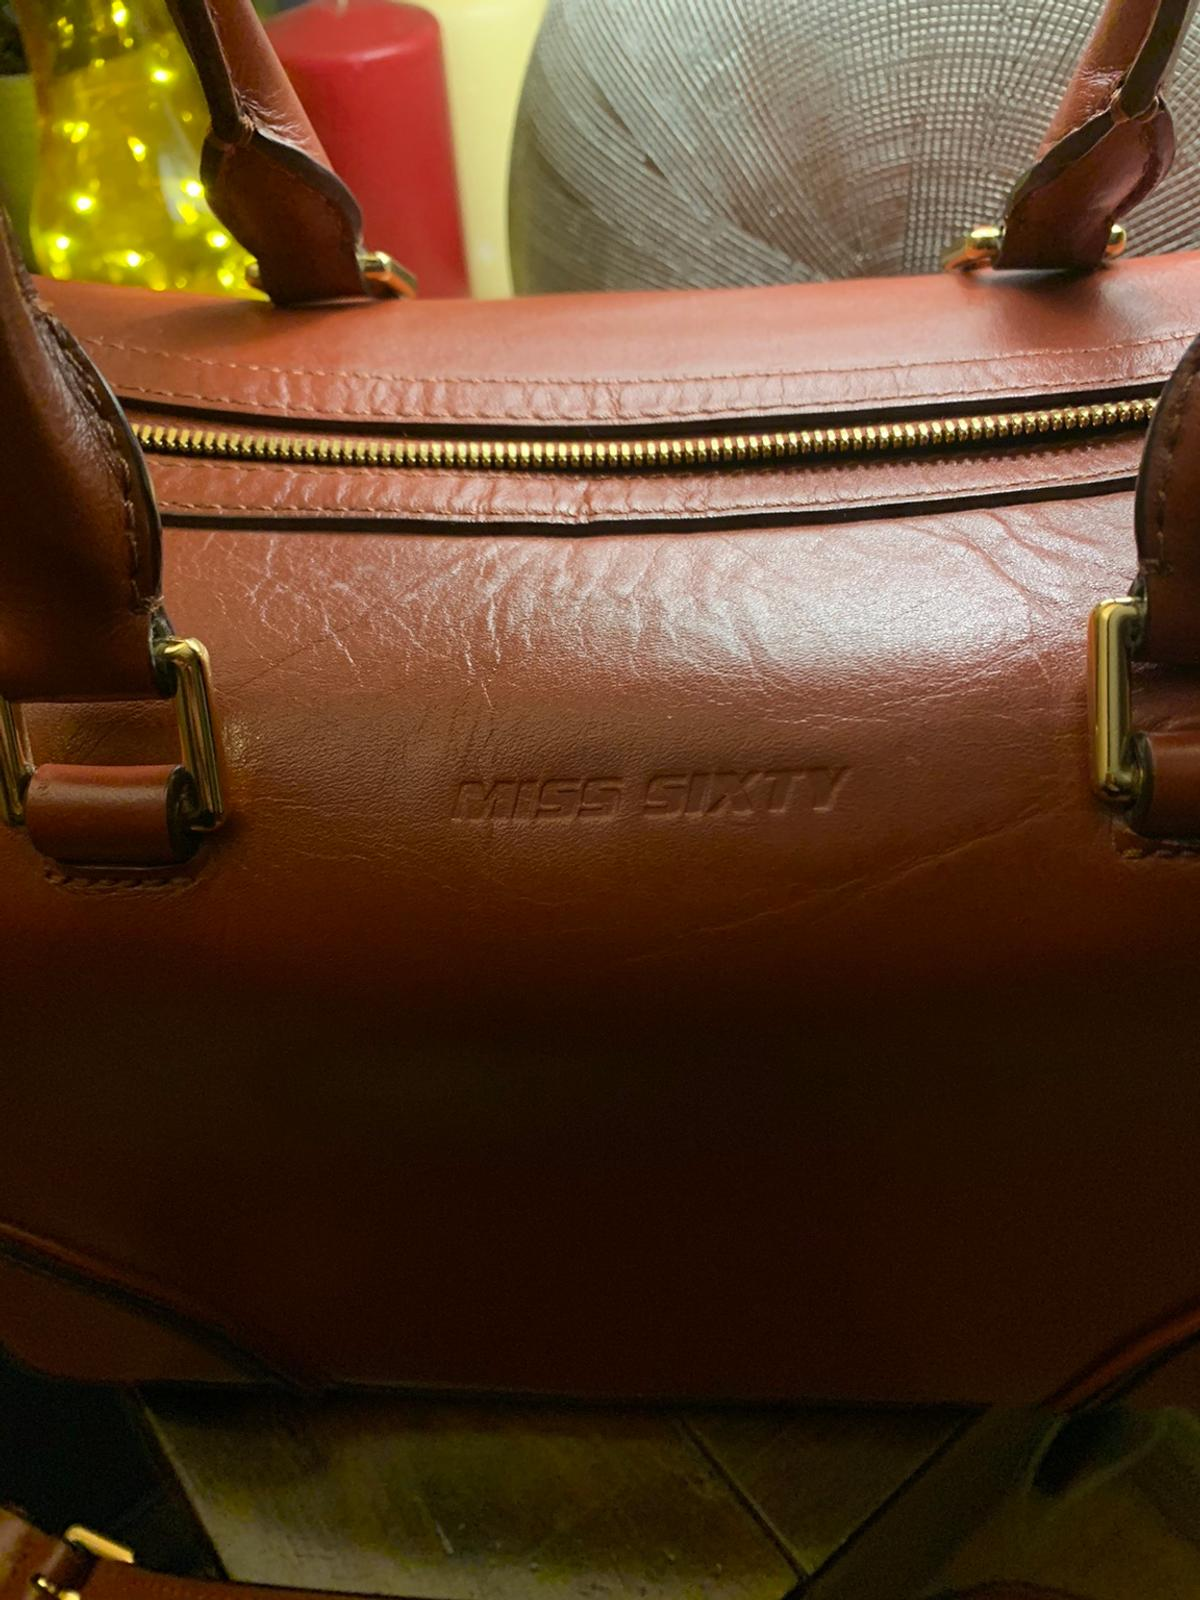 Large miss sixty leather bag in BL1 Bolton for £45.00 for